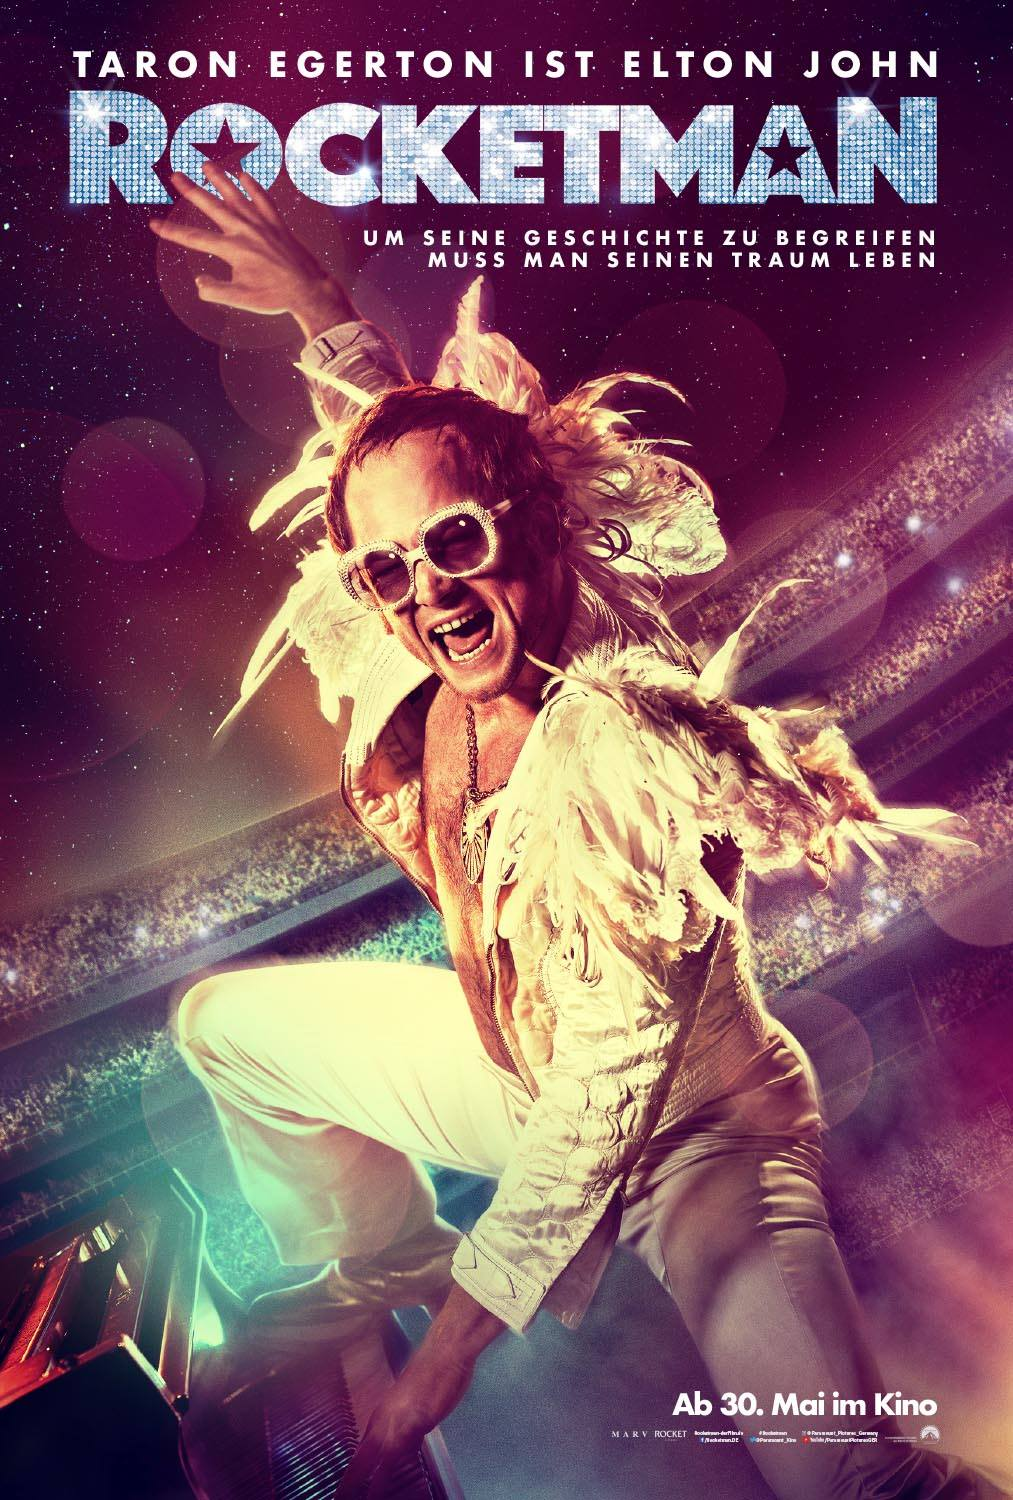 Rocketman Film (2019) · Trailer · Kritik · KINO.de